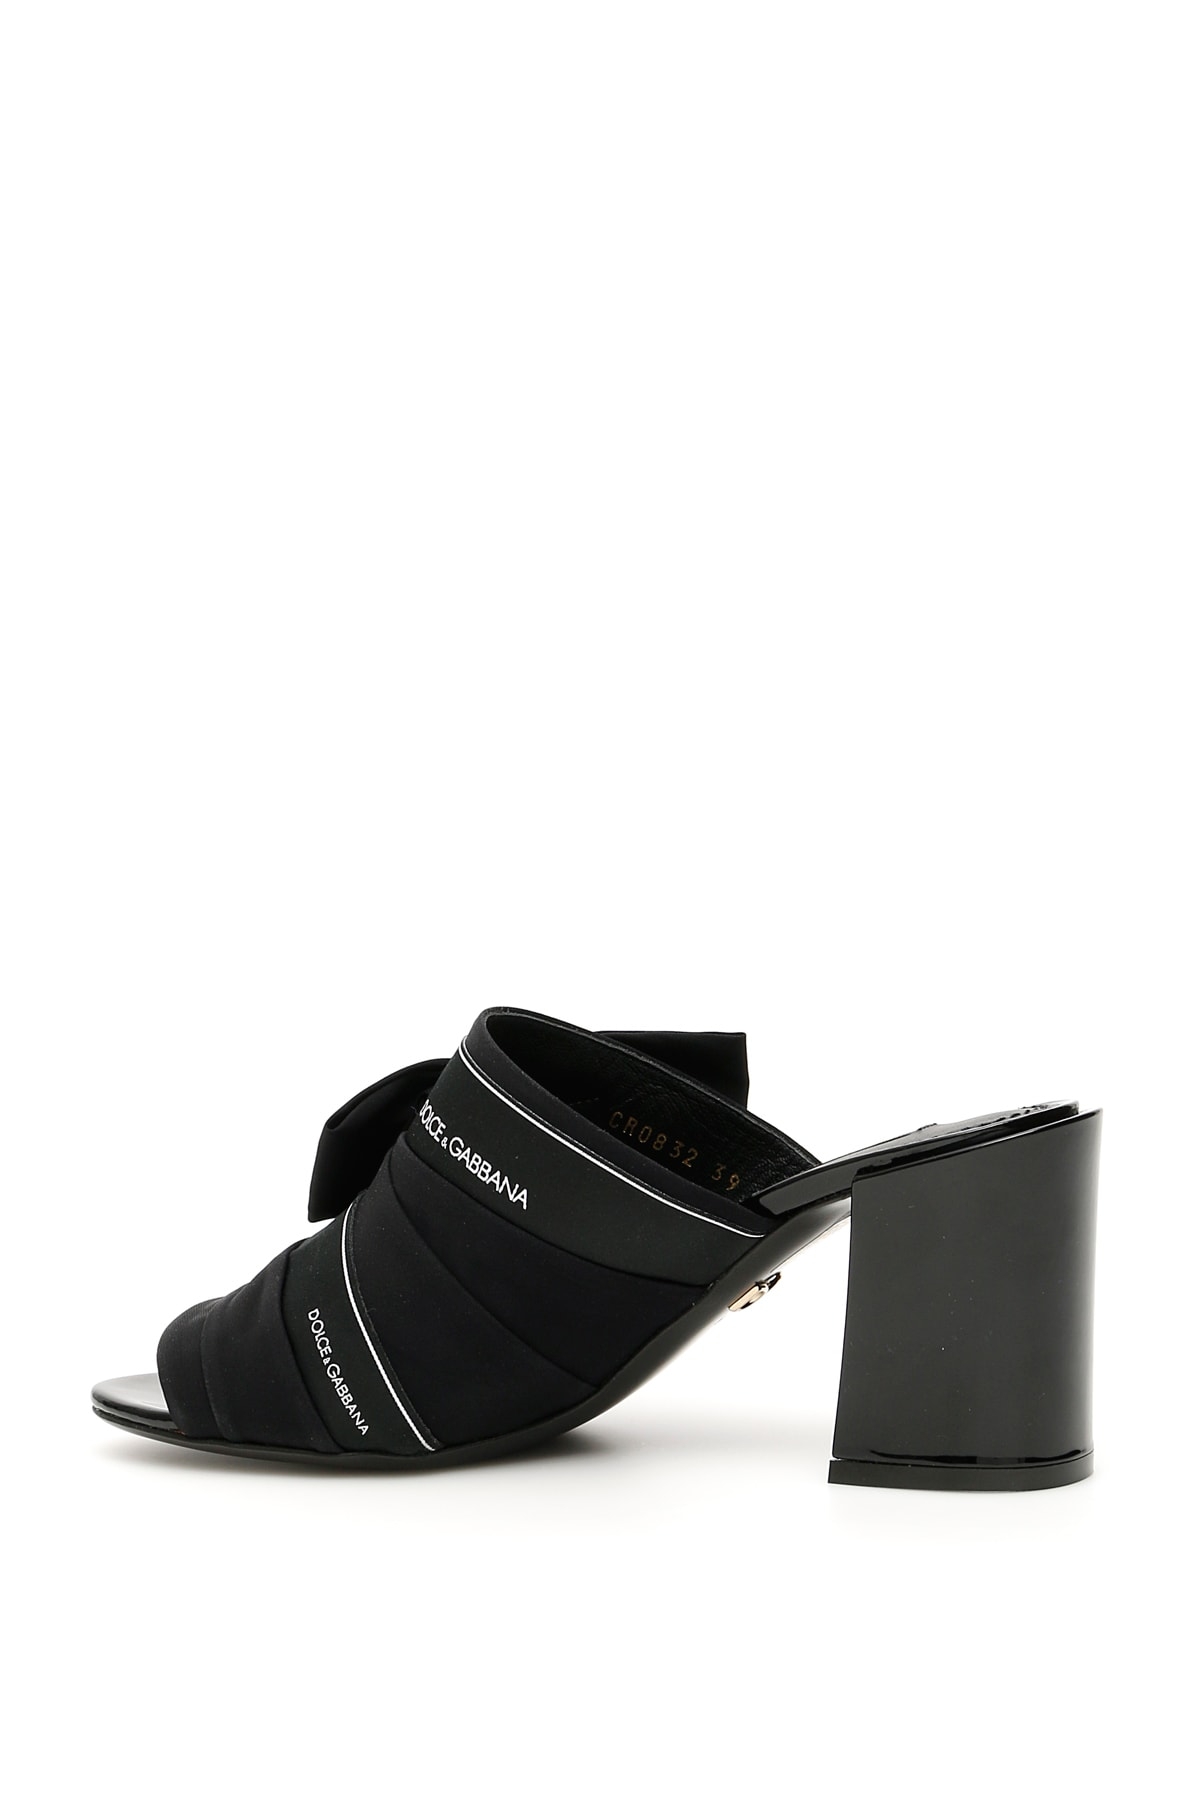 High Quality Dolce & Gabbana Crystal Buckle Keira Mules - Great Deals